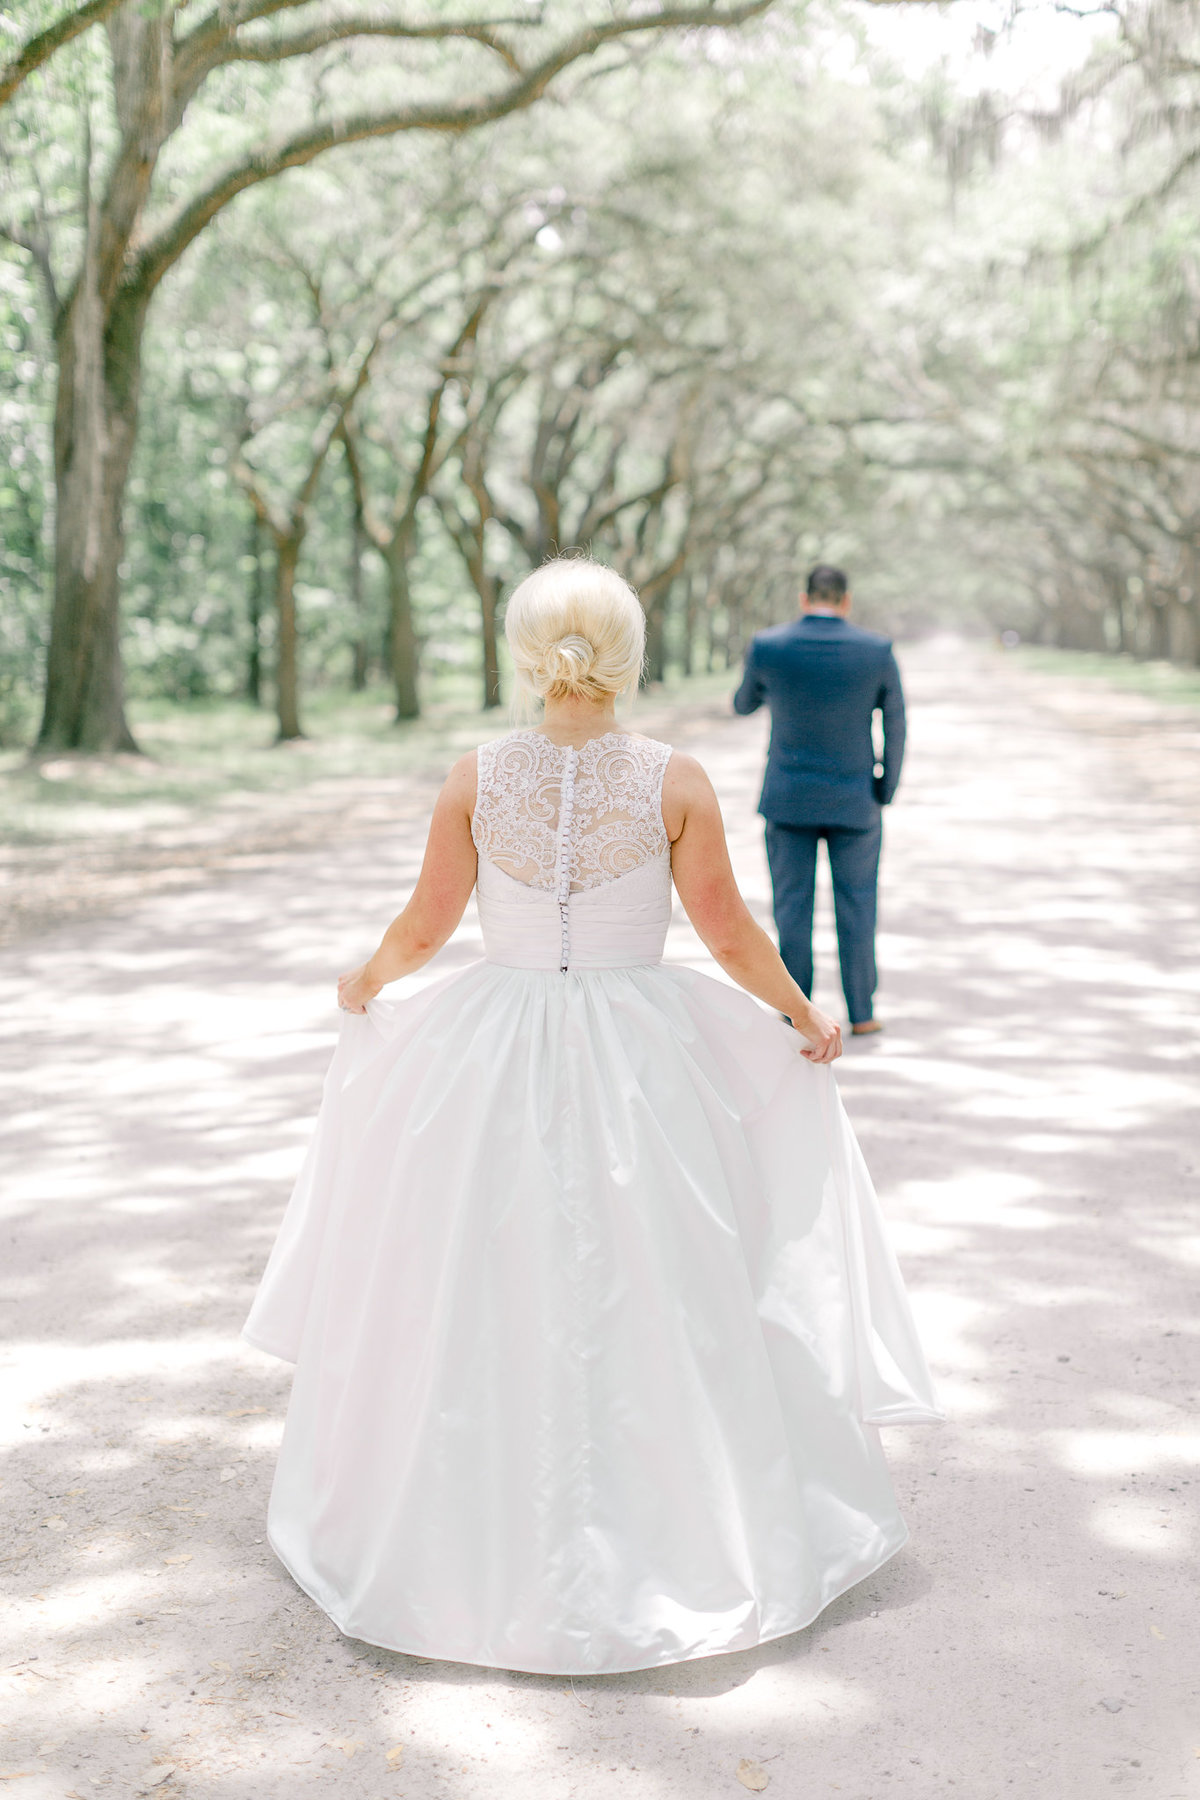 Savannah-Georgia-Wedding-Photographer-Holly-Felts-Photography-Wilmon-Wedding-53